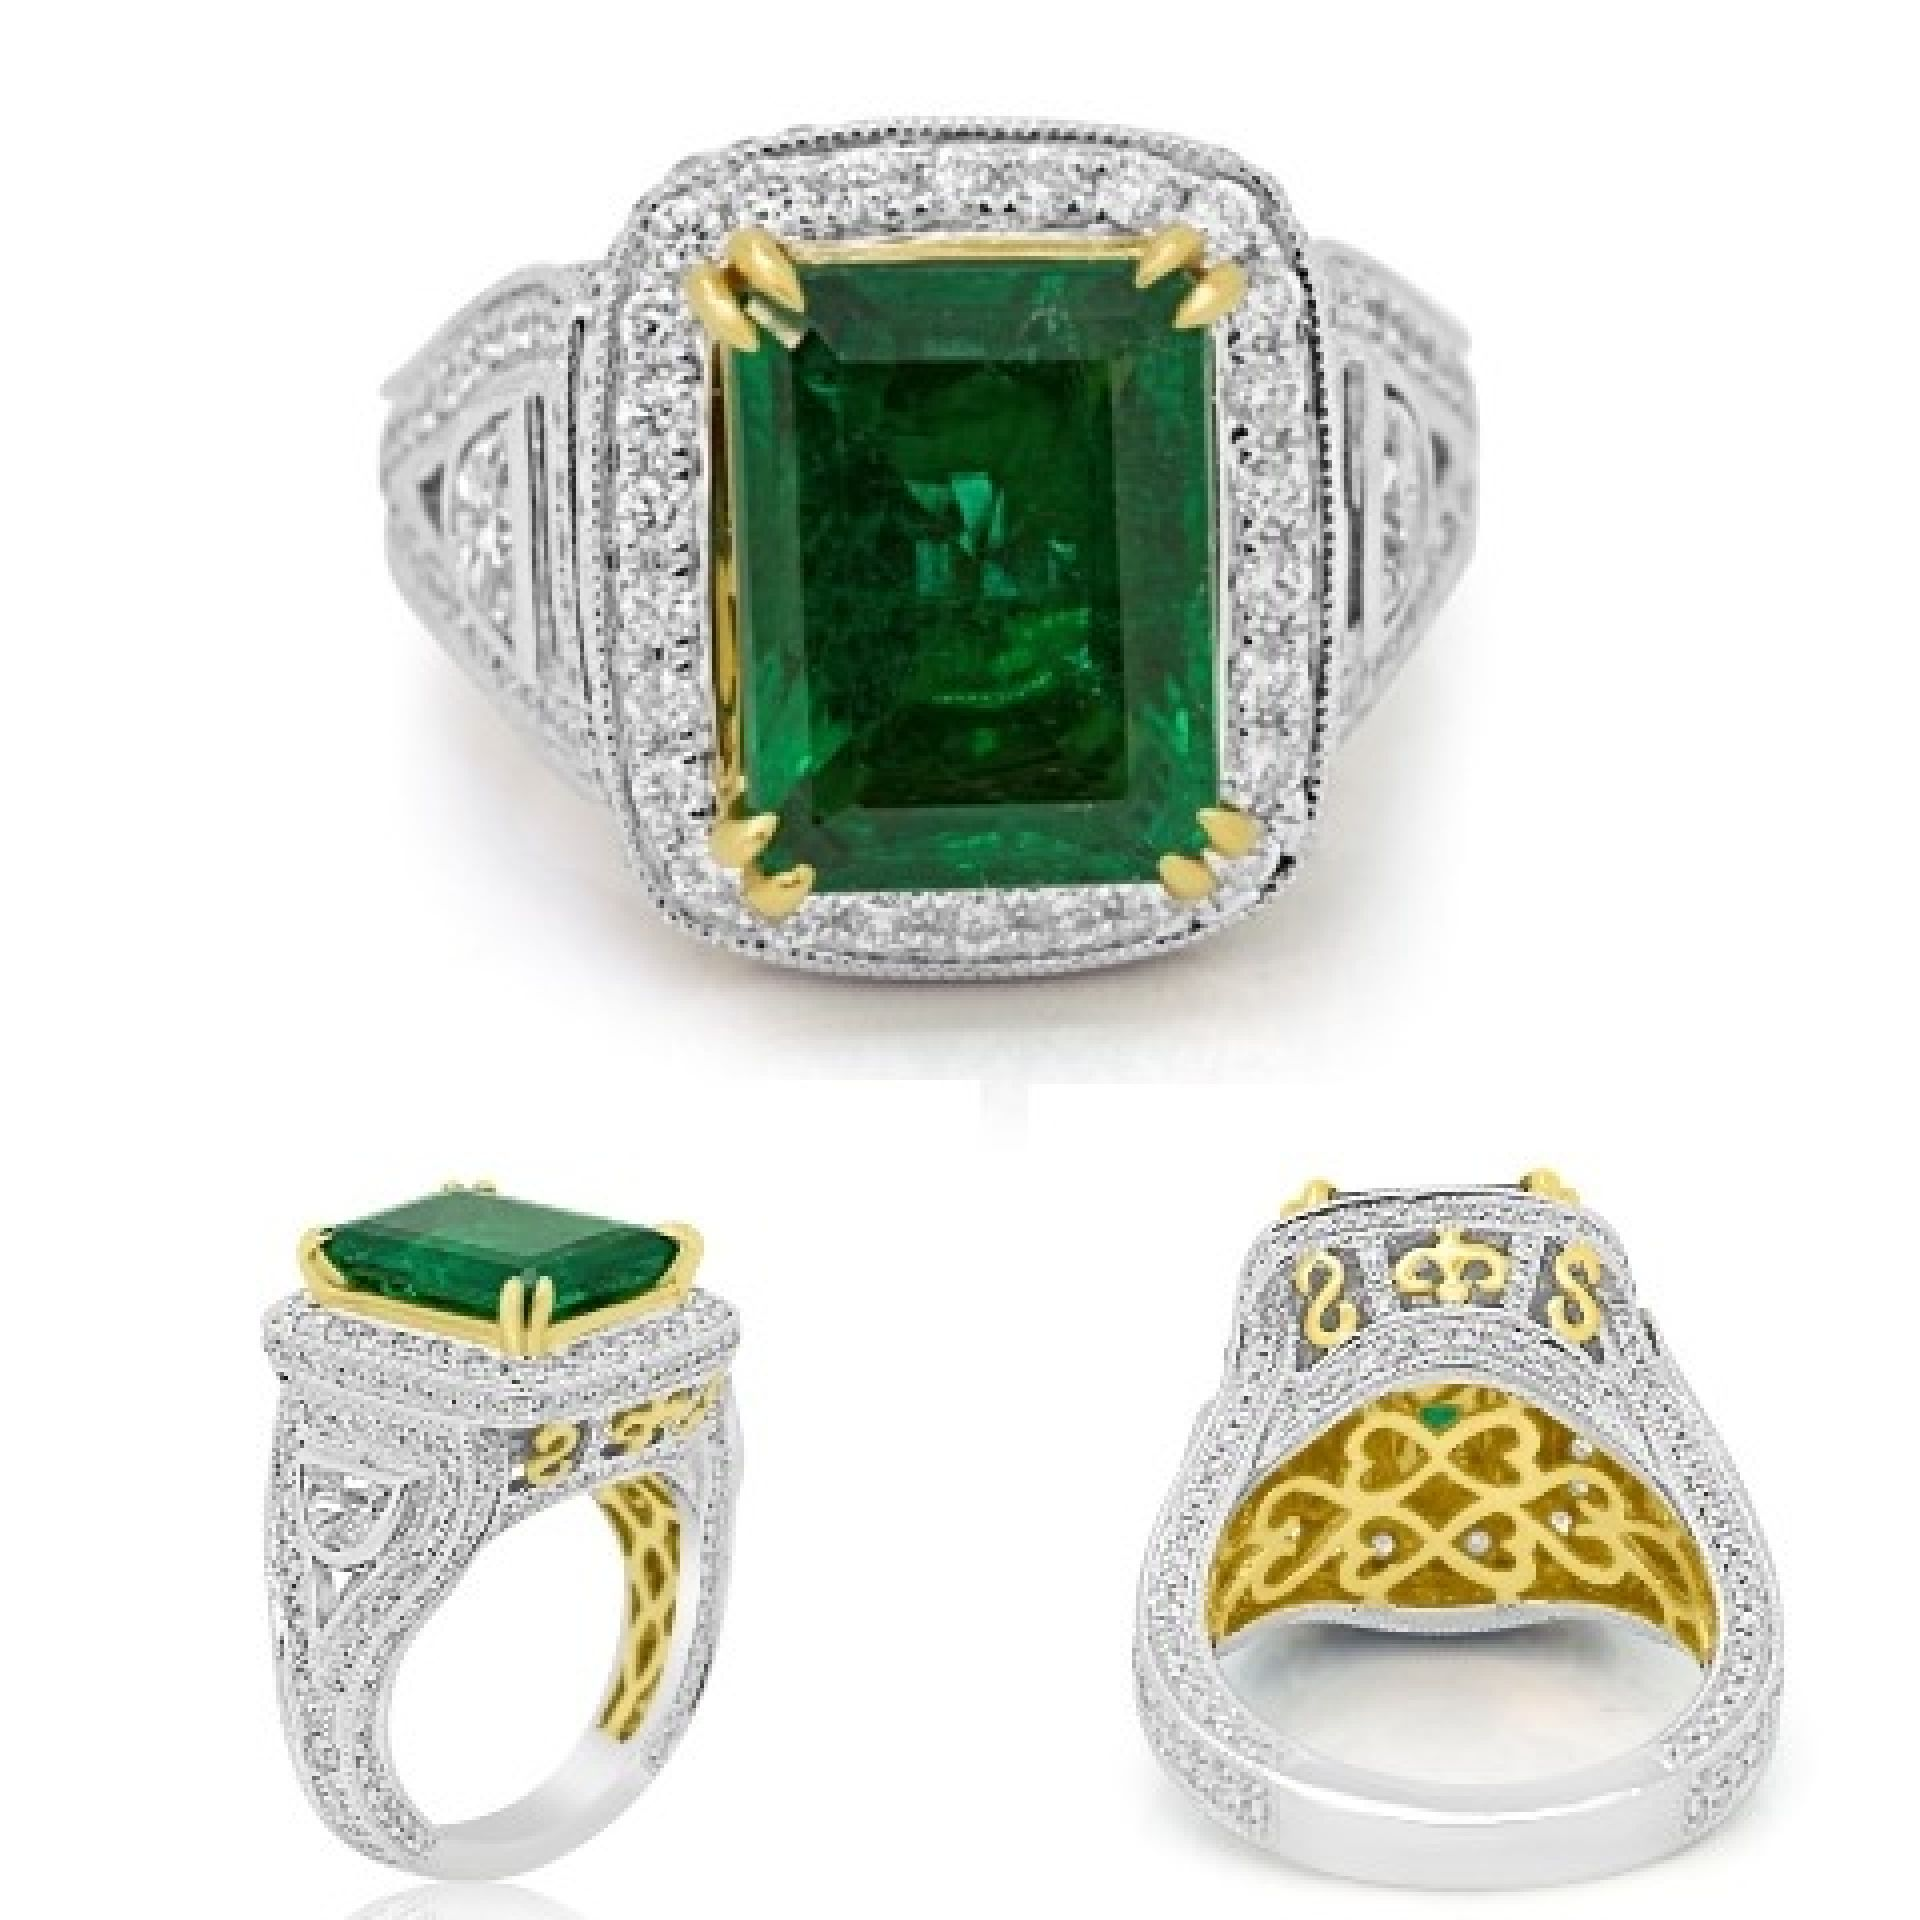 GIA Certified Gem Quality Emerald Diamond Two Color Gold Halo Ring